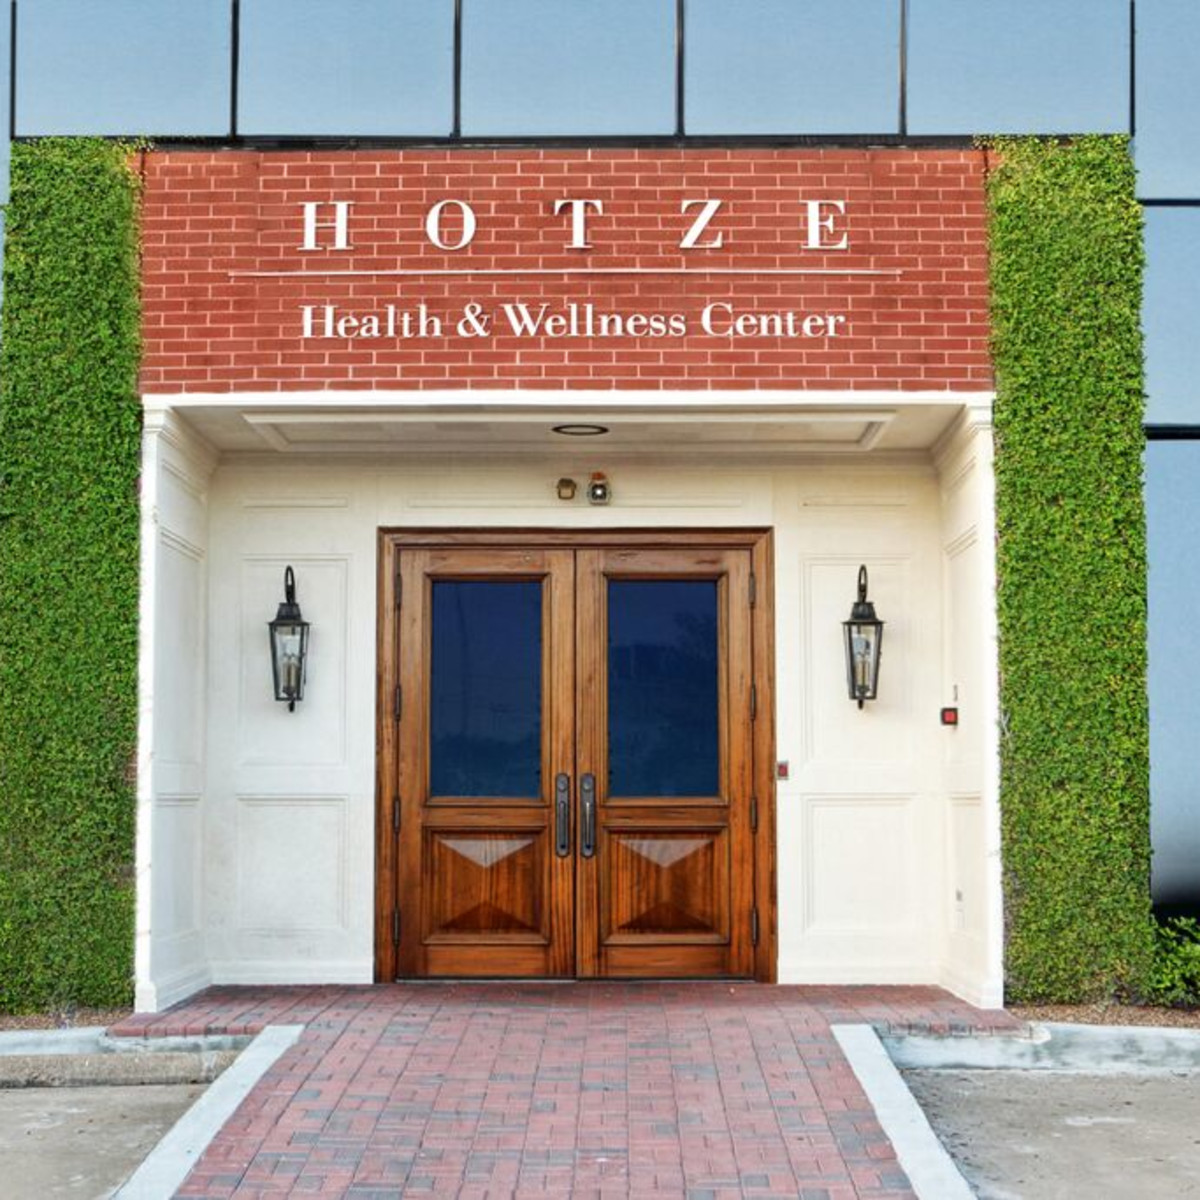 Hotze Health & Wellness